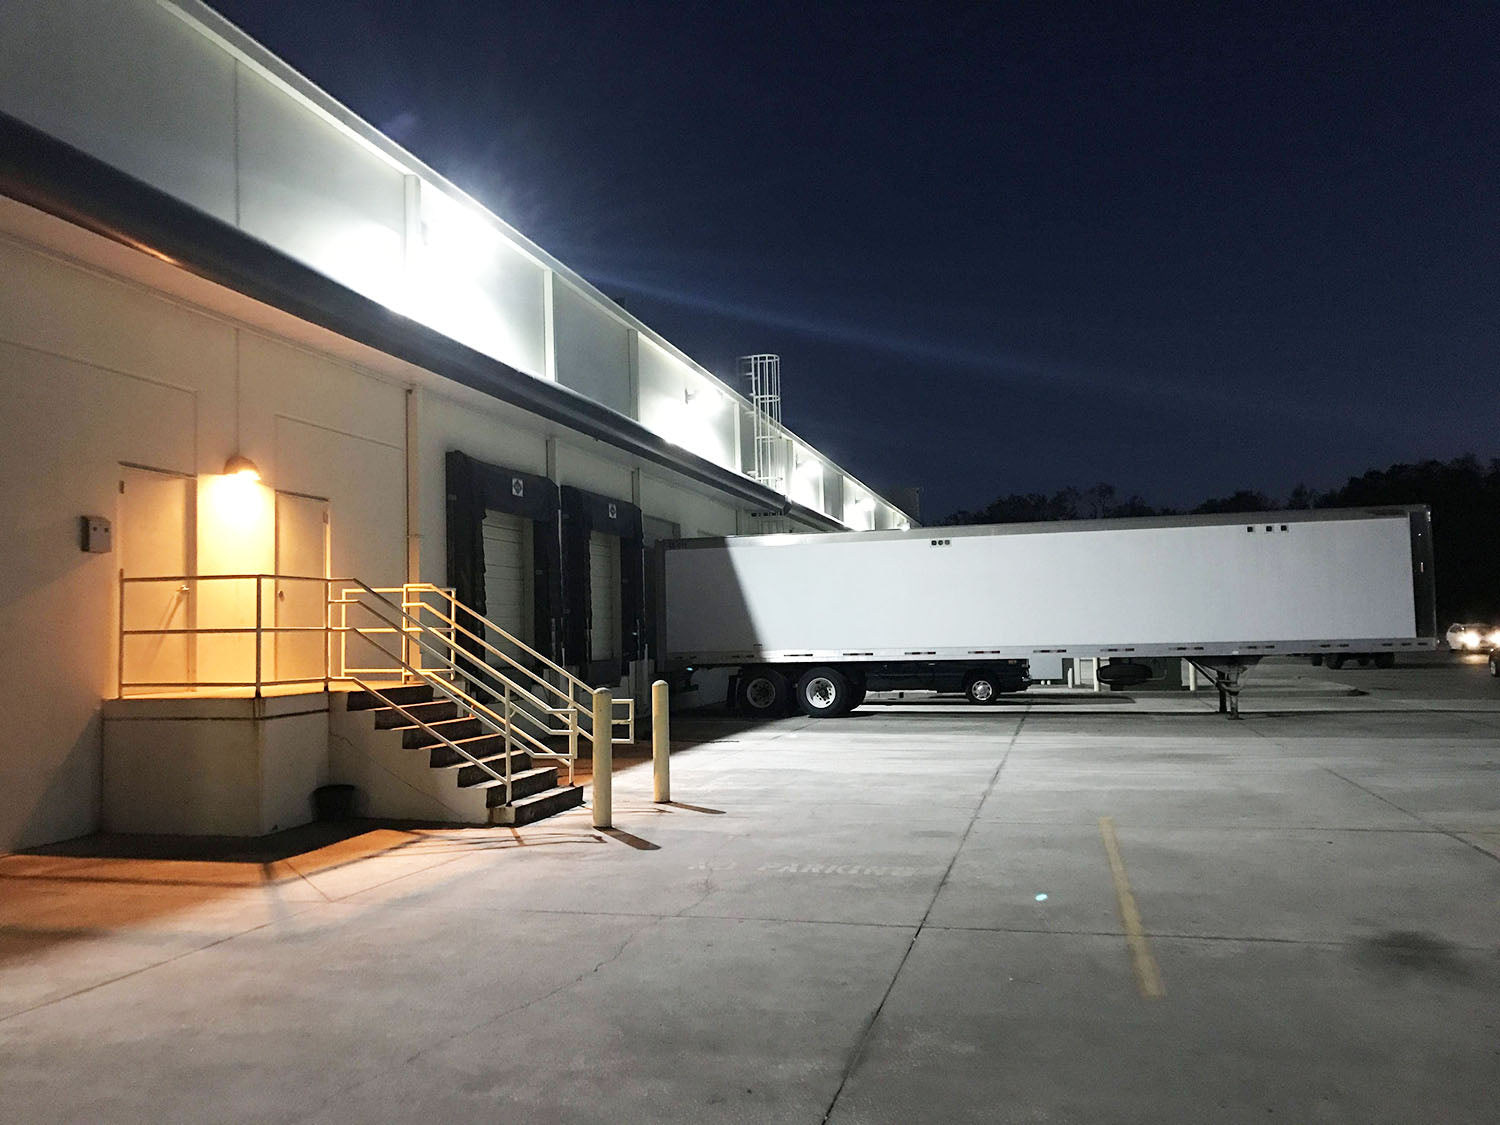 AirPark North LED Retrofit Case Study